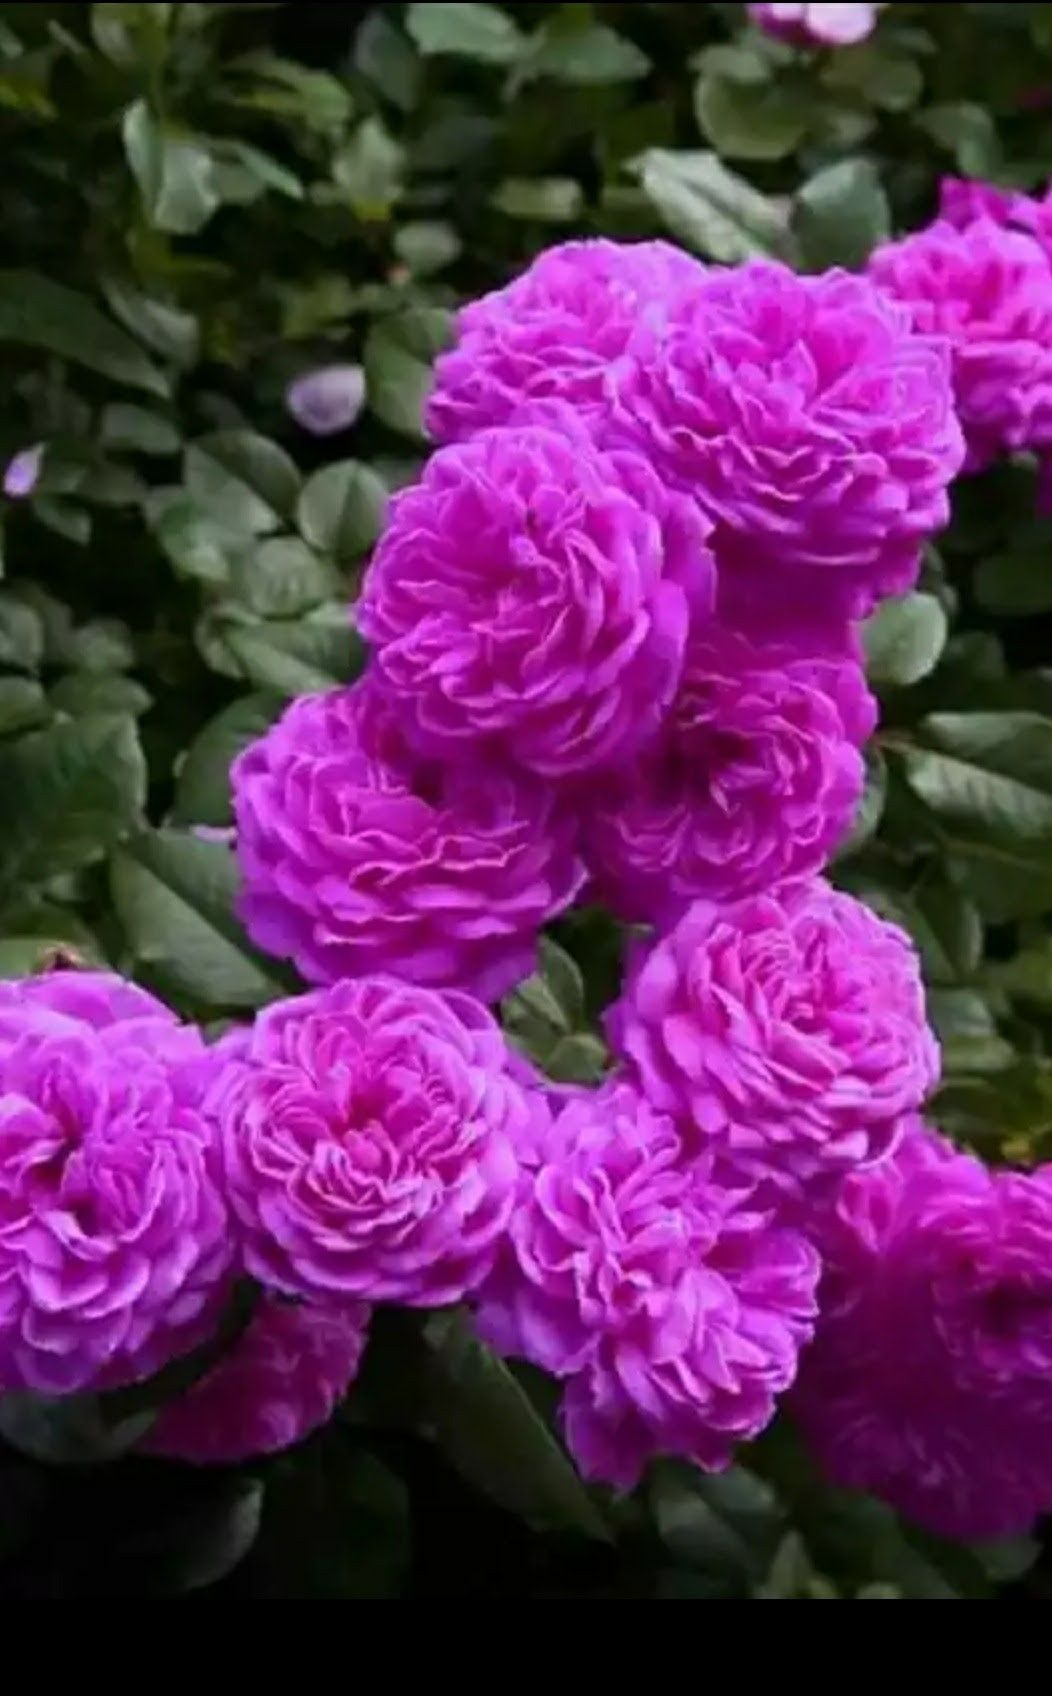 Pin By Maria Mendes On Flor Pinterest Flowers Beautiful Flowers